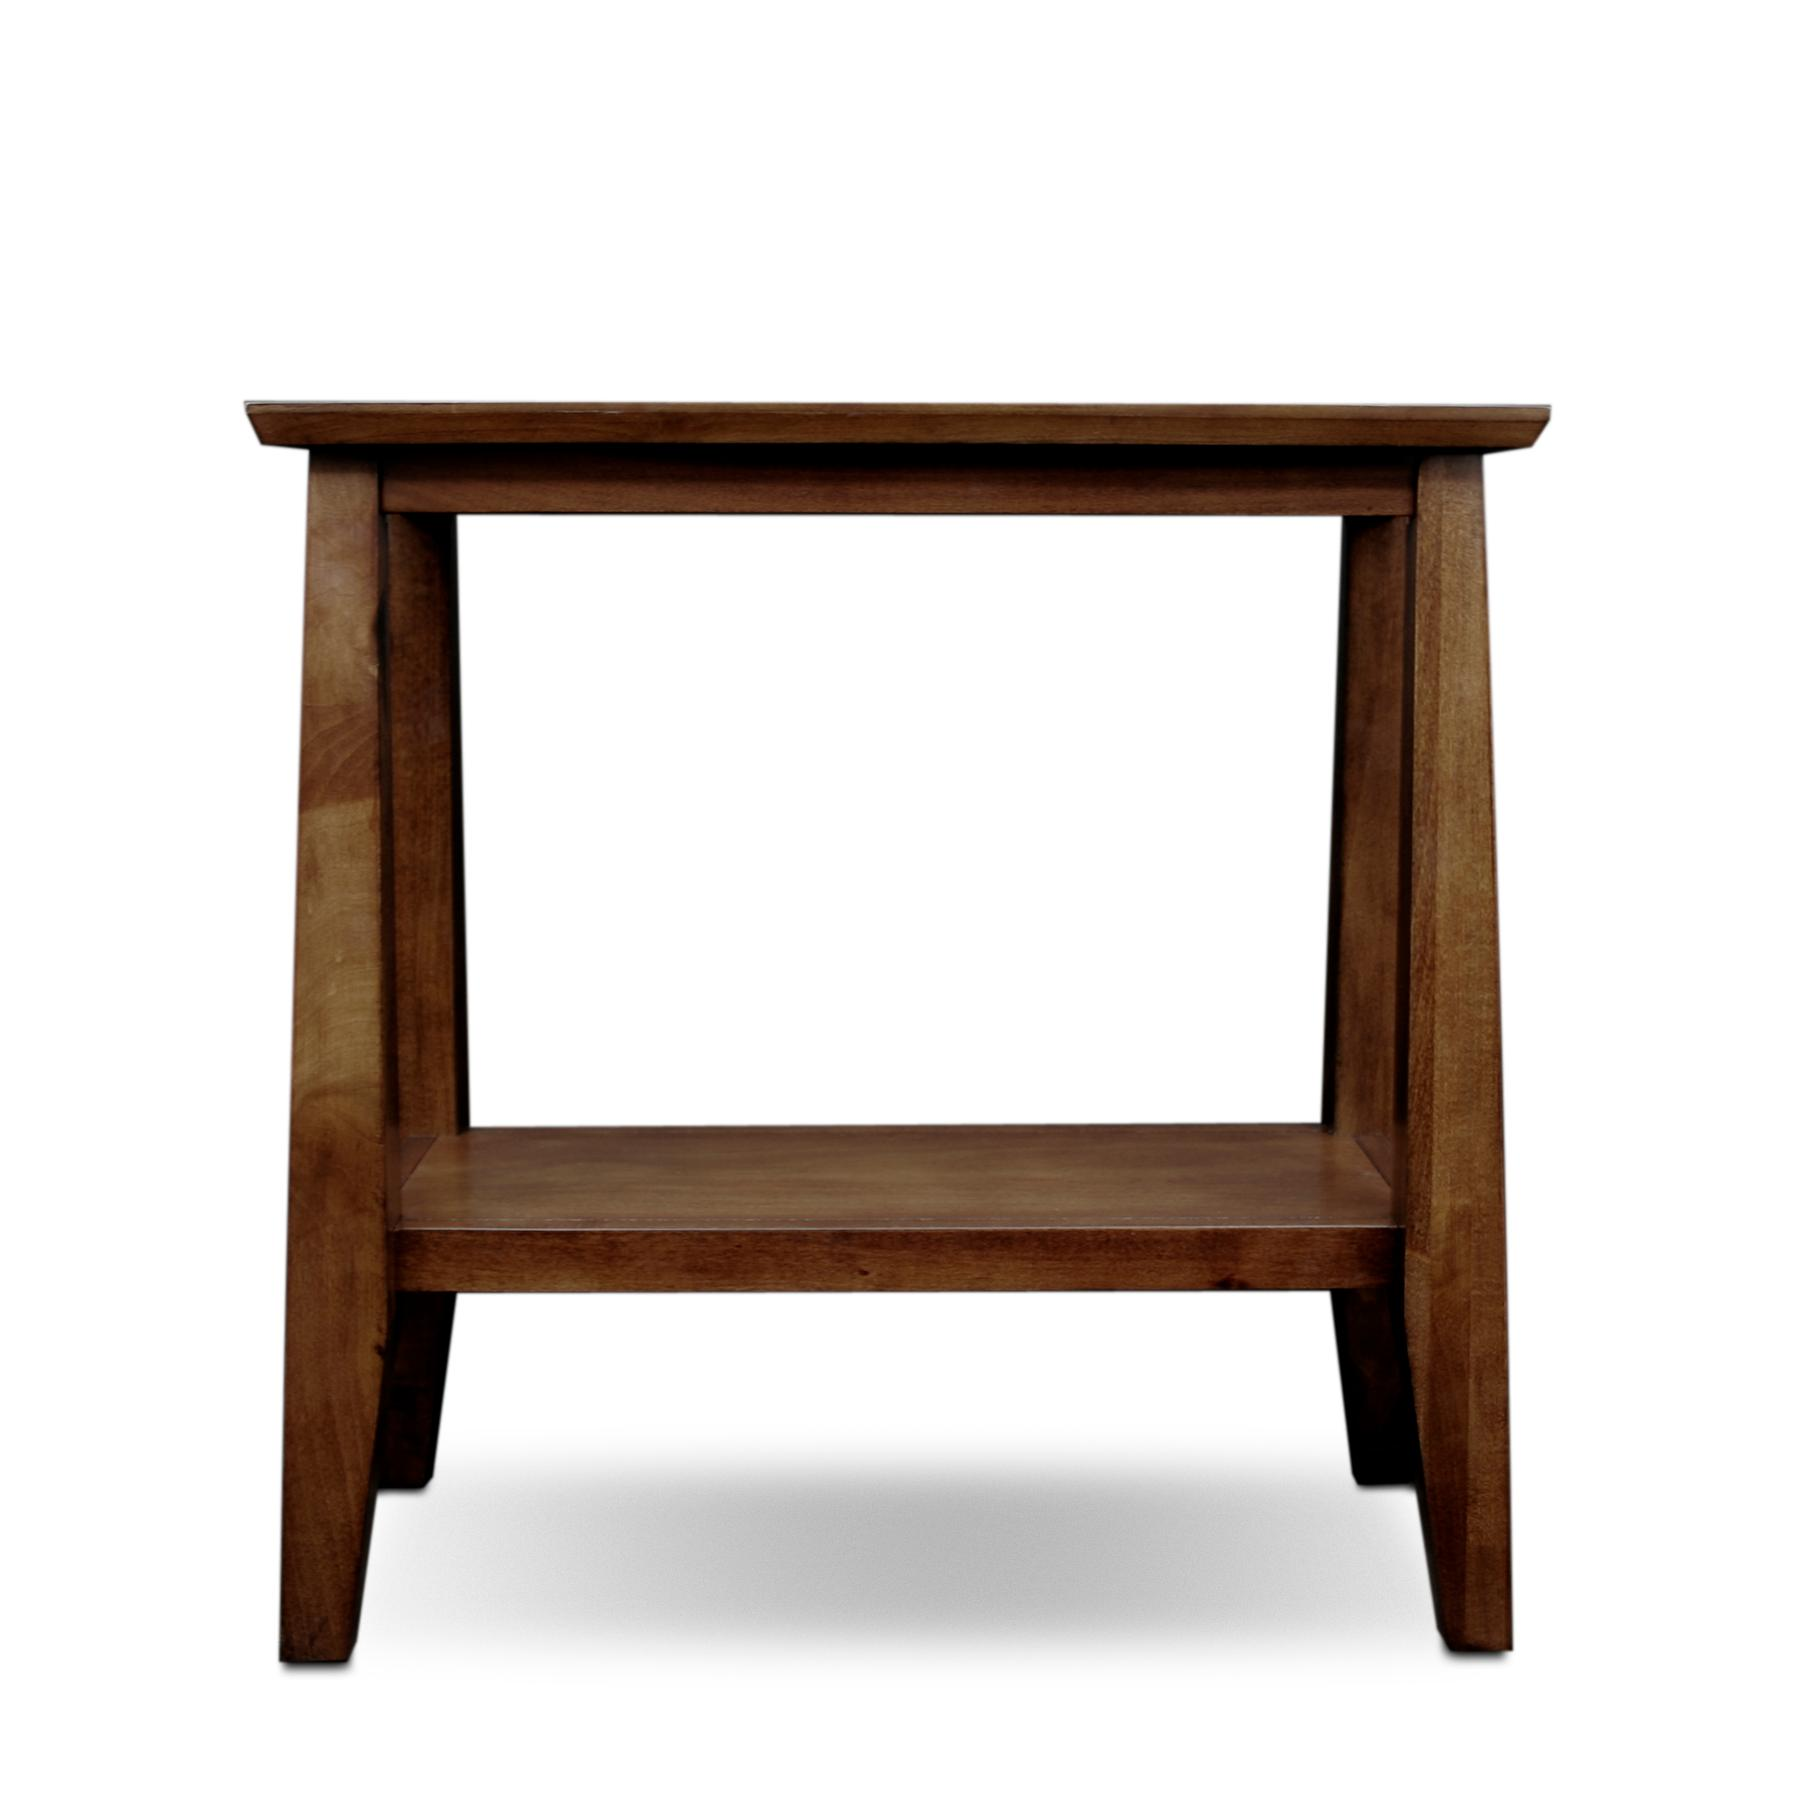 Narrow Chair End Tables Side Tables Chair Side Tables Chairside Tables